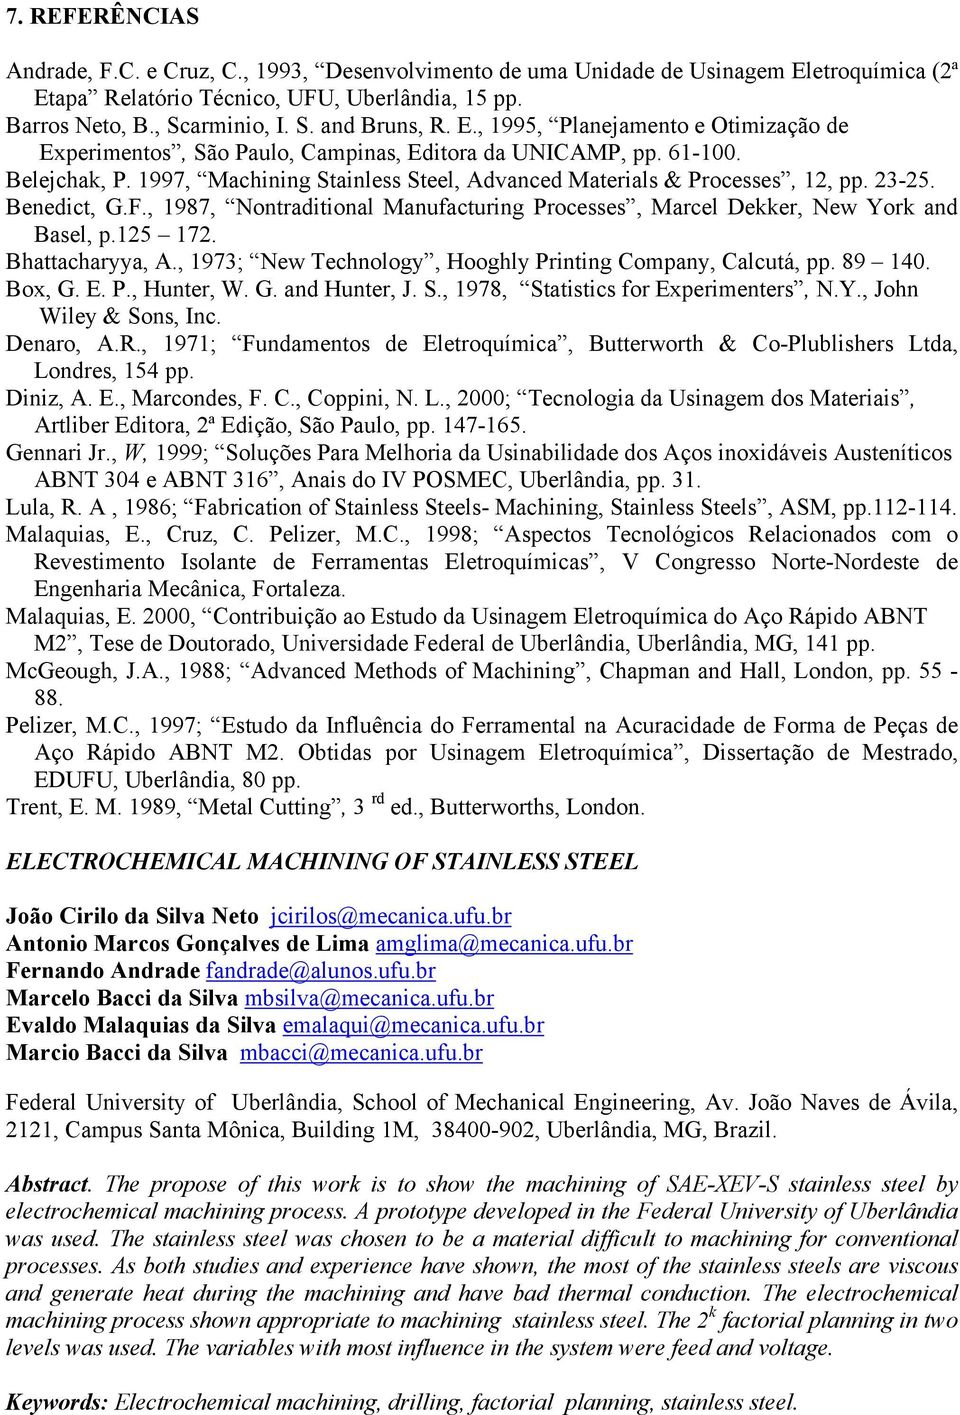 Benedict, G.F., 1987, Nontraditional Manufacturing Processes, Marcel Dekker, New York and Basel, p.125 172. Bhattacharyya, A., 1973; New Technology, Hooghly Printing Company, Calcutá, pp. 89 140.